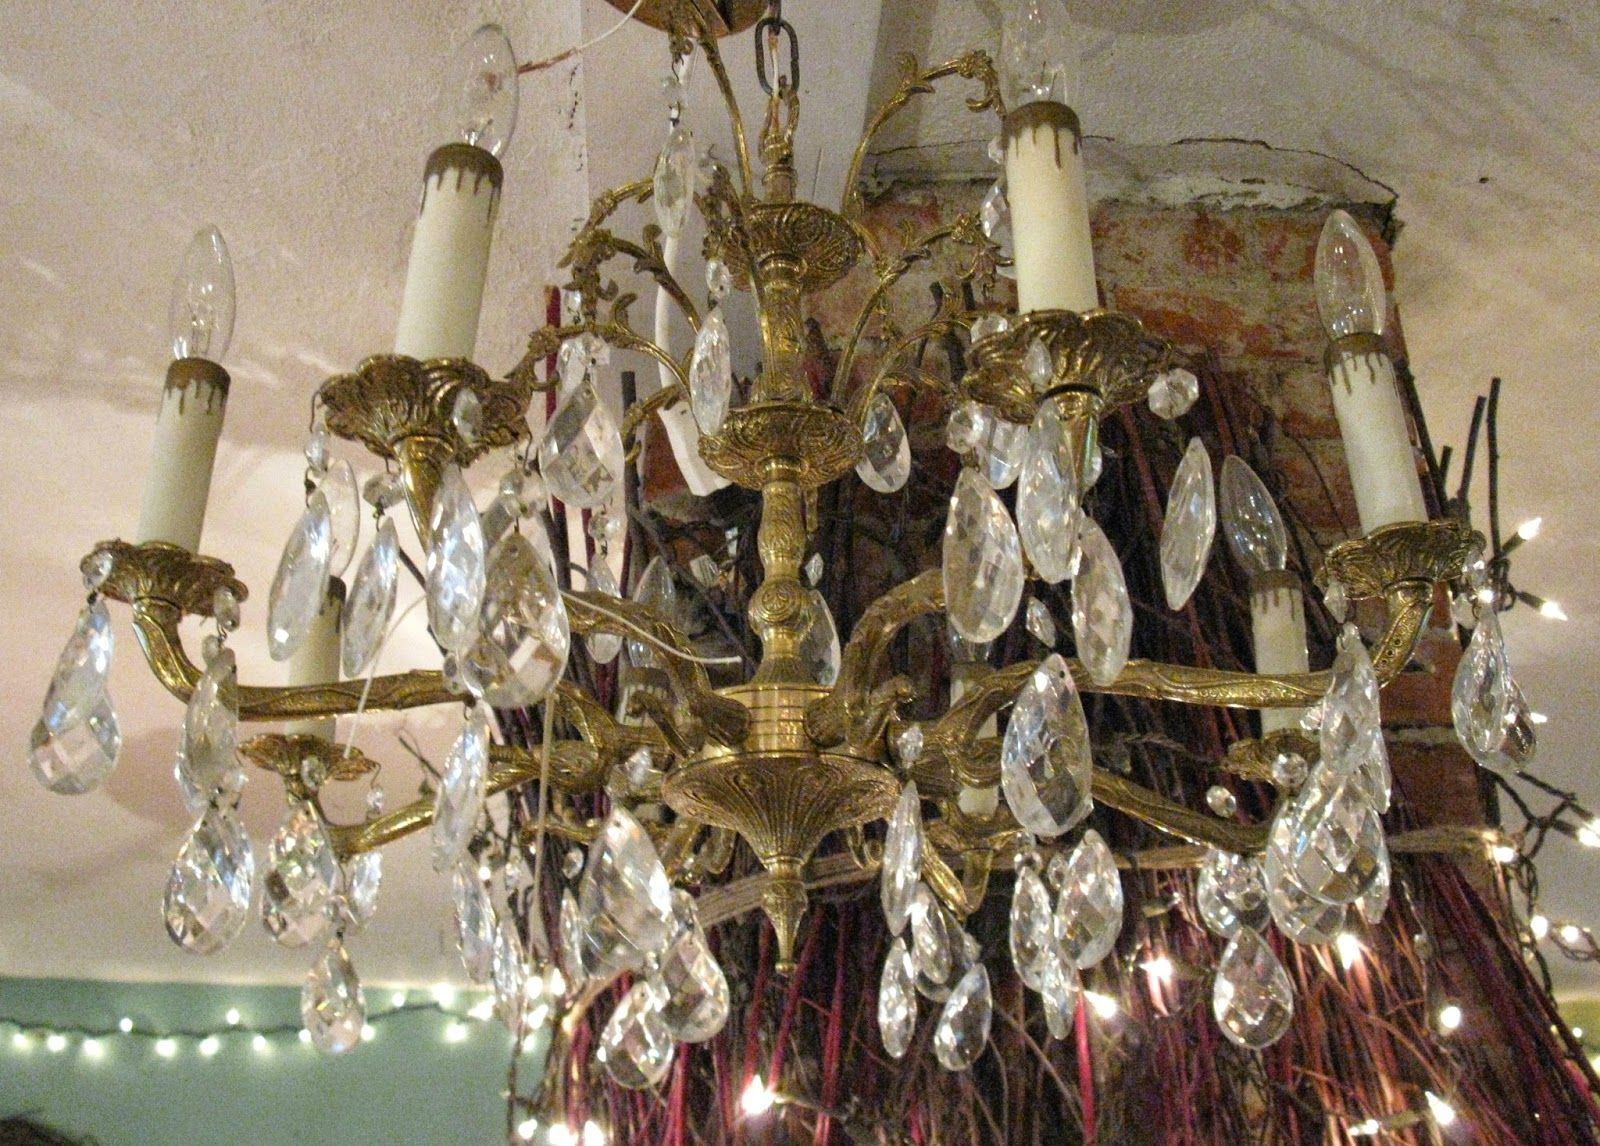 Spread the sparkle! Always chandeliers at Sisters Garden!